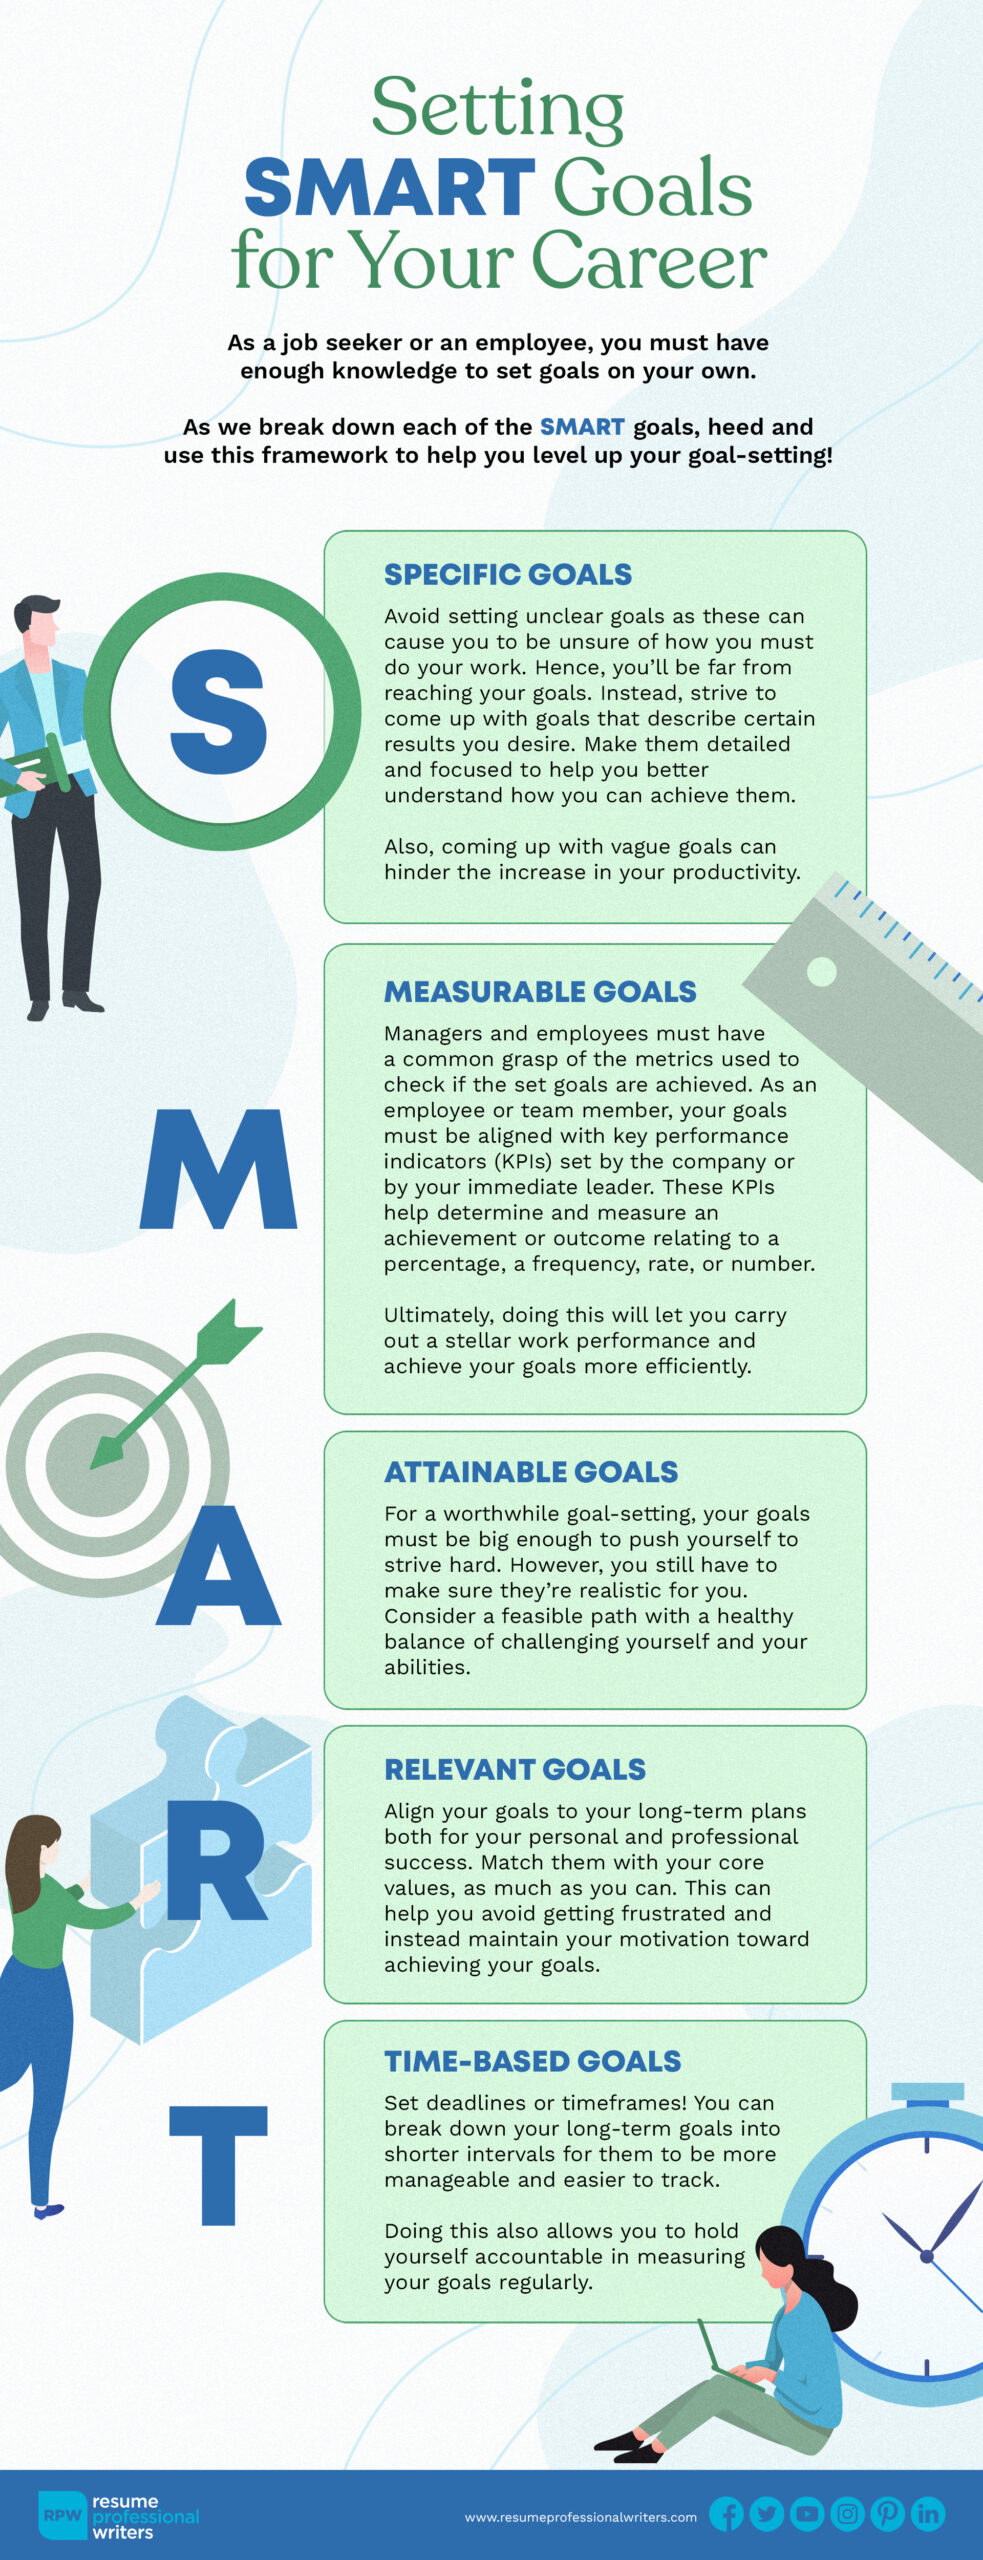 infographic on a guide to setting SMART goals for your career